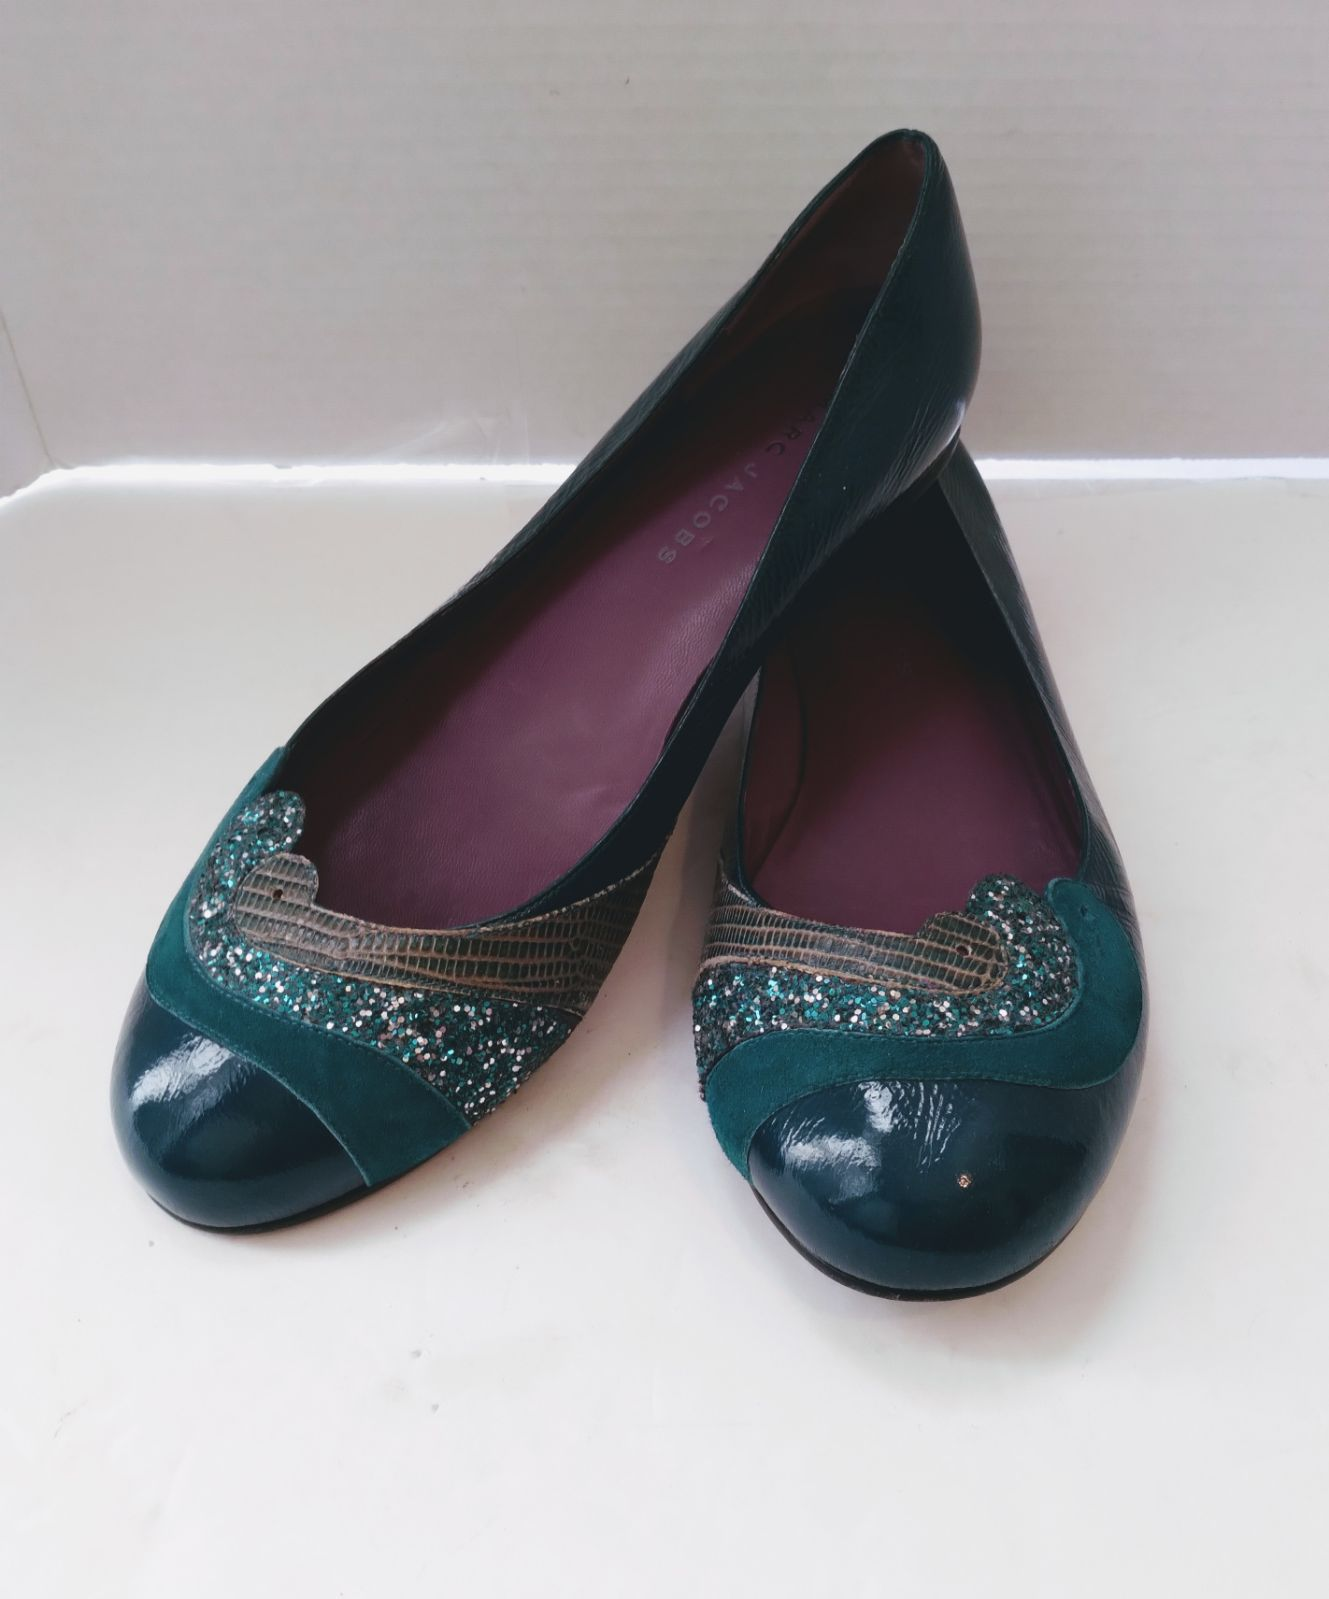 Gorgeous Green Marc Jacobs Flats